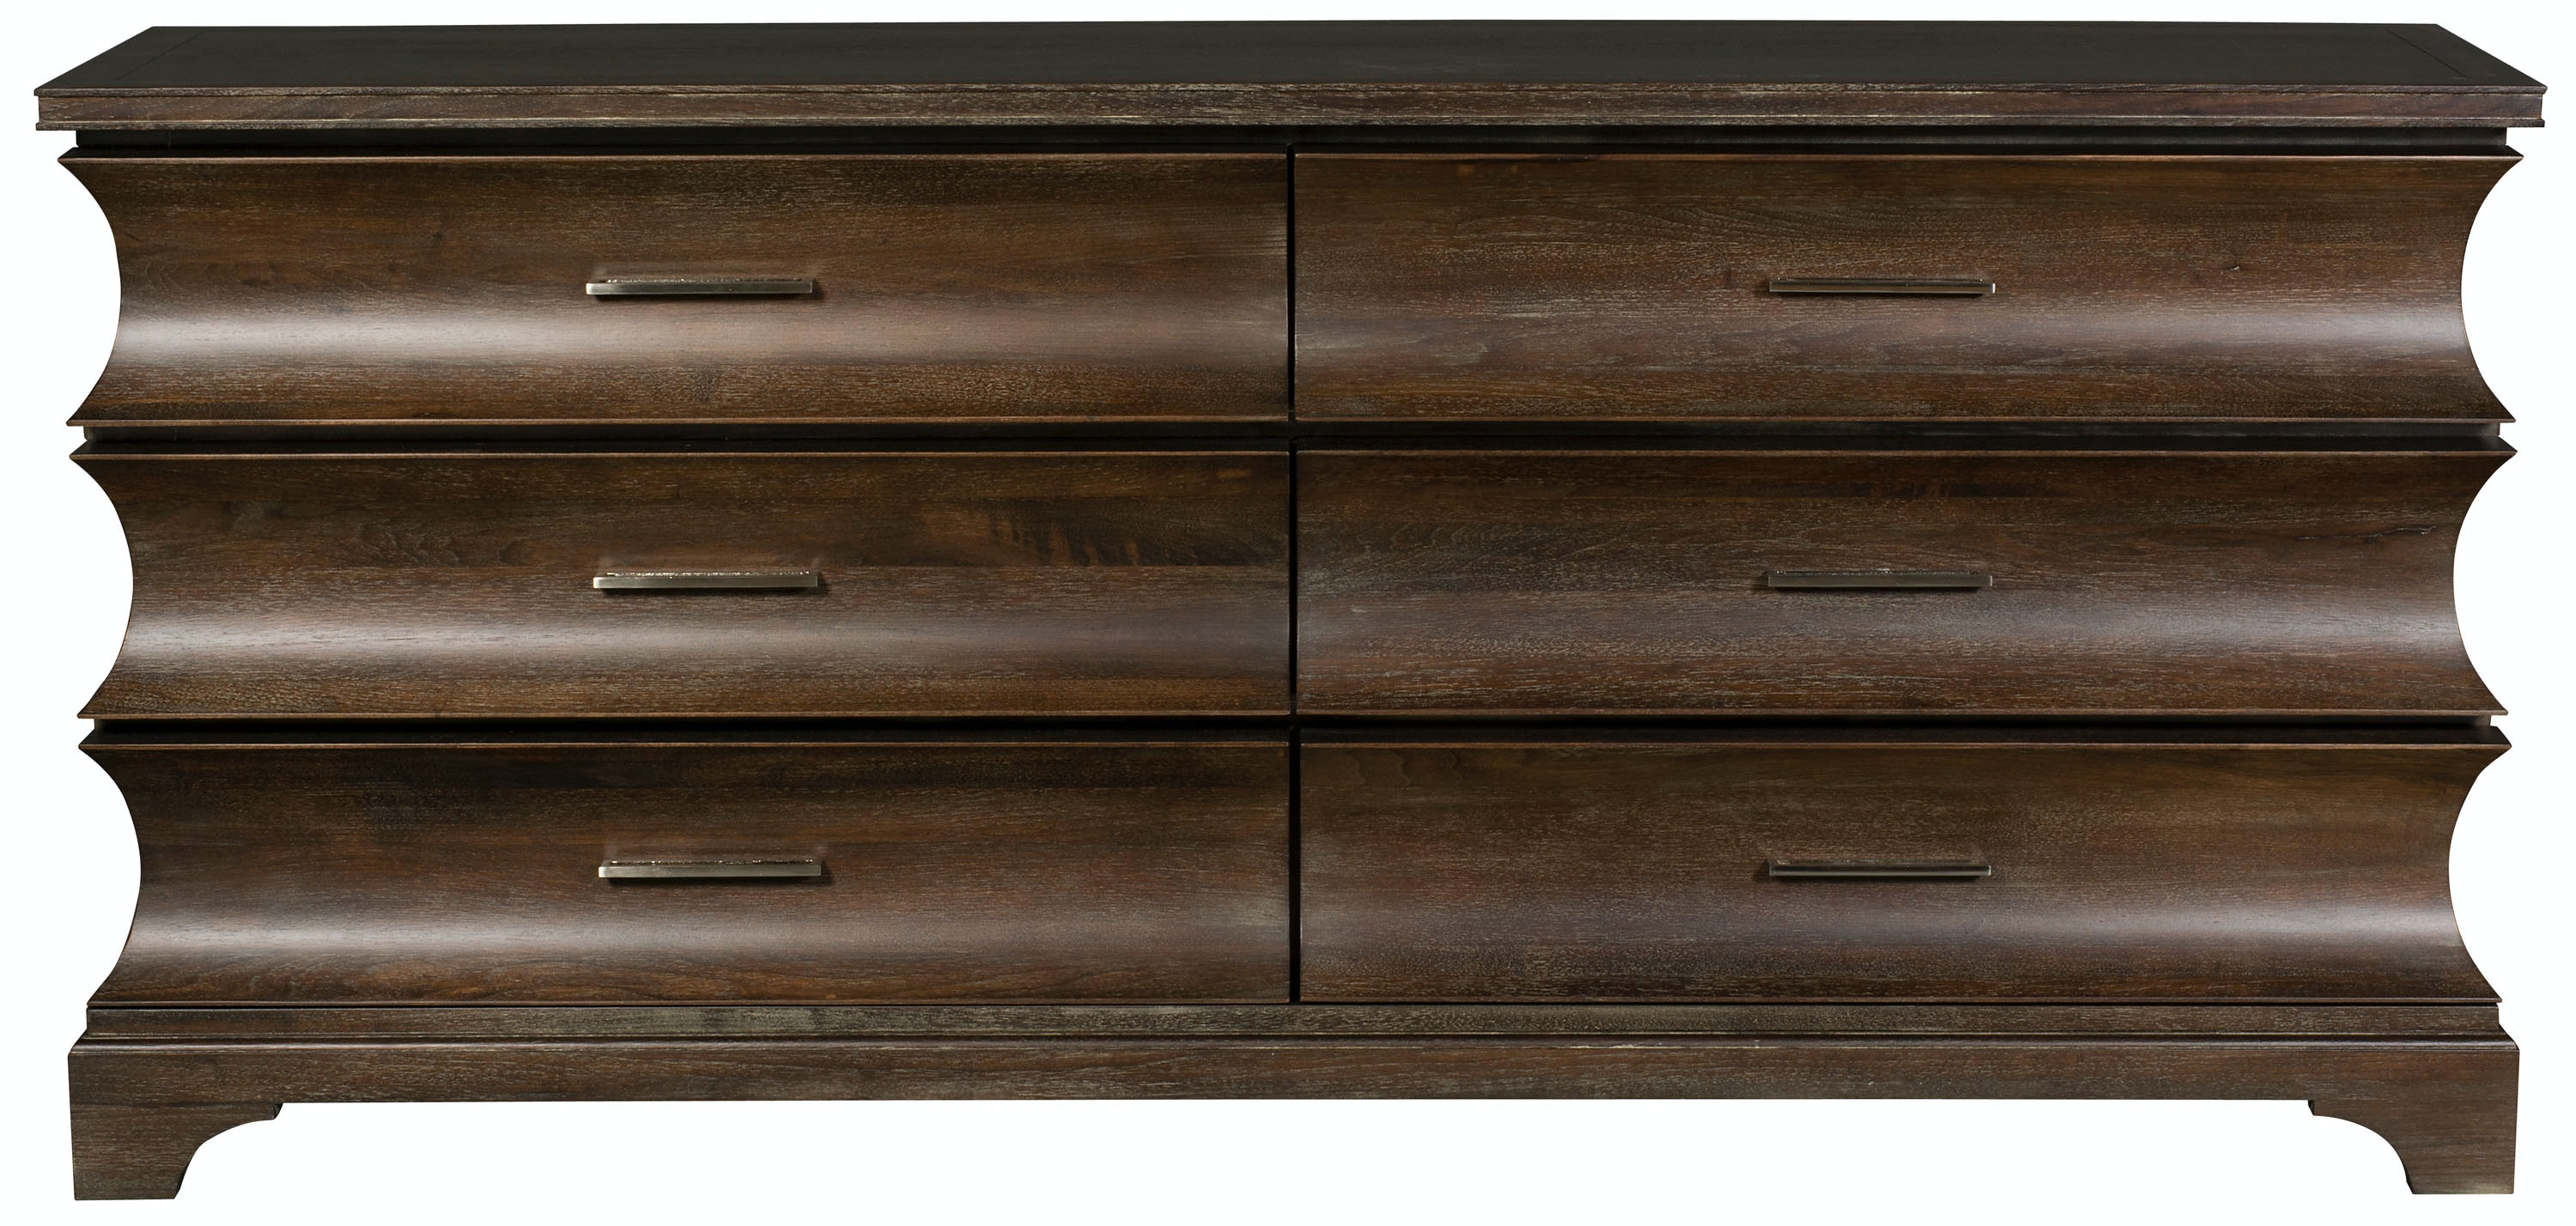 Vanguard Furniture Pebble Hill Chest Of Drawers 9515D